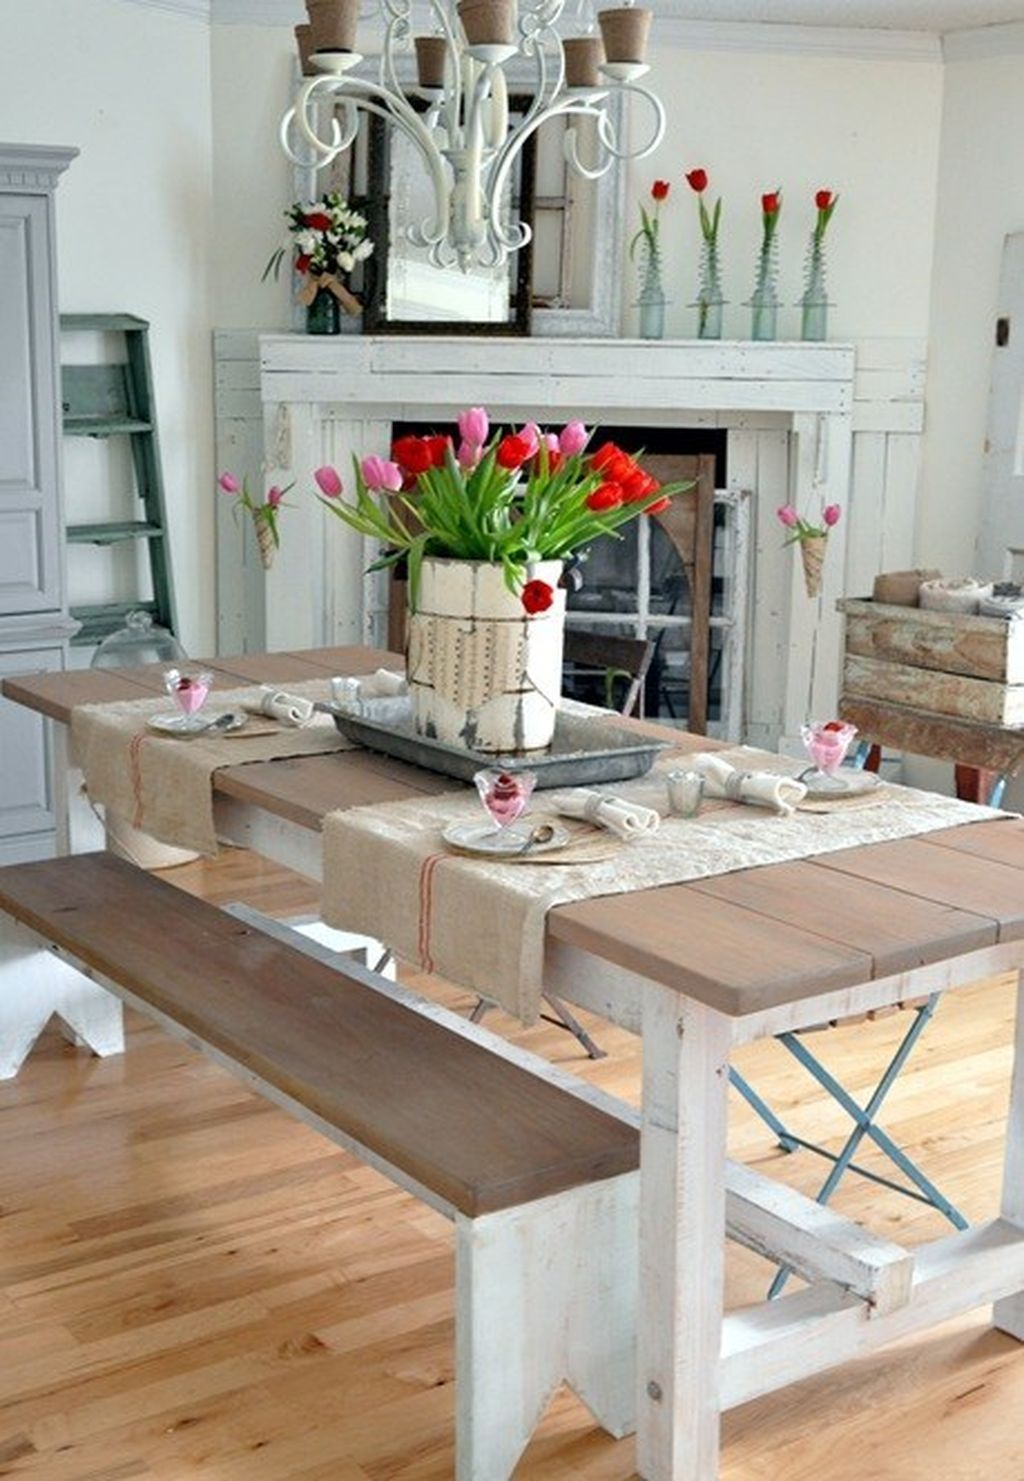 Stunning Romantic Dining Room Decor Ideas Best For Valentines Day 06